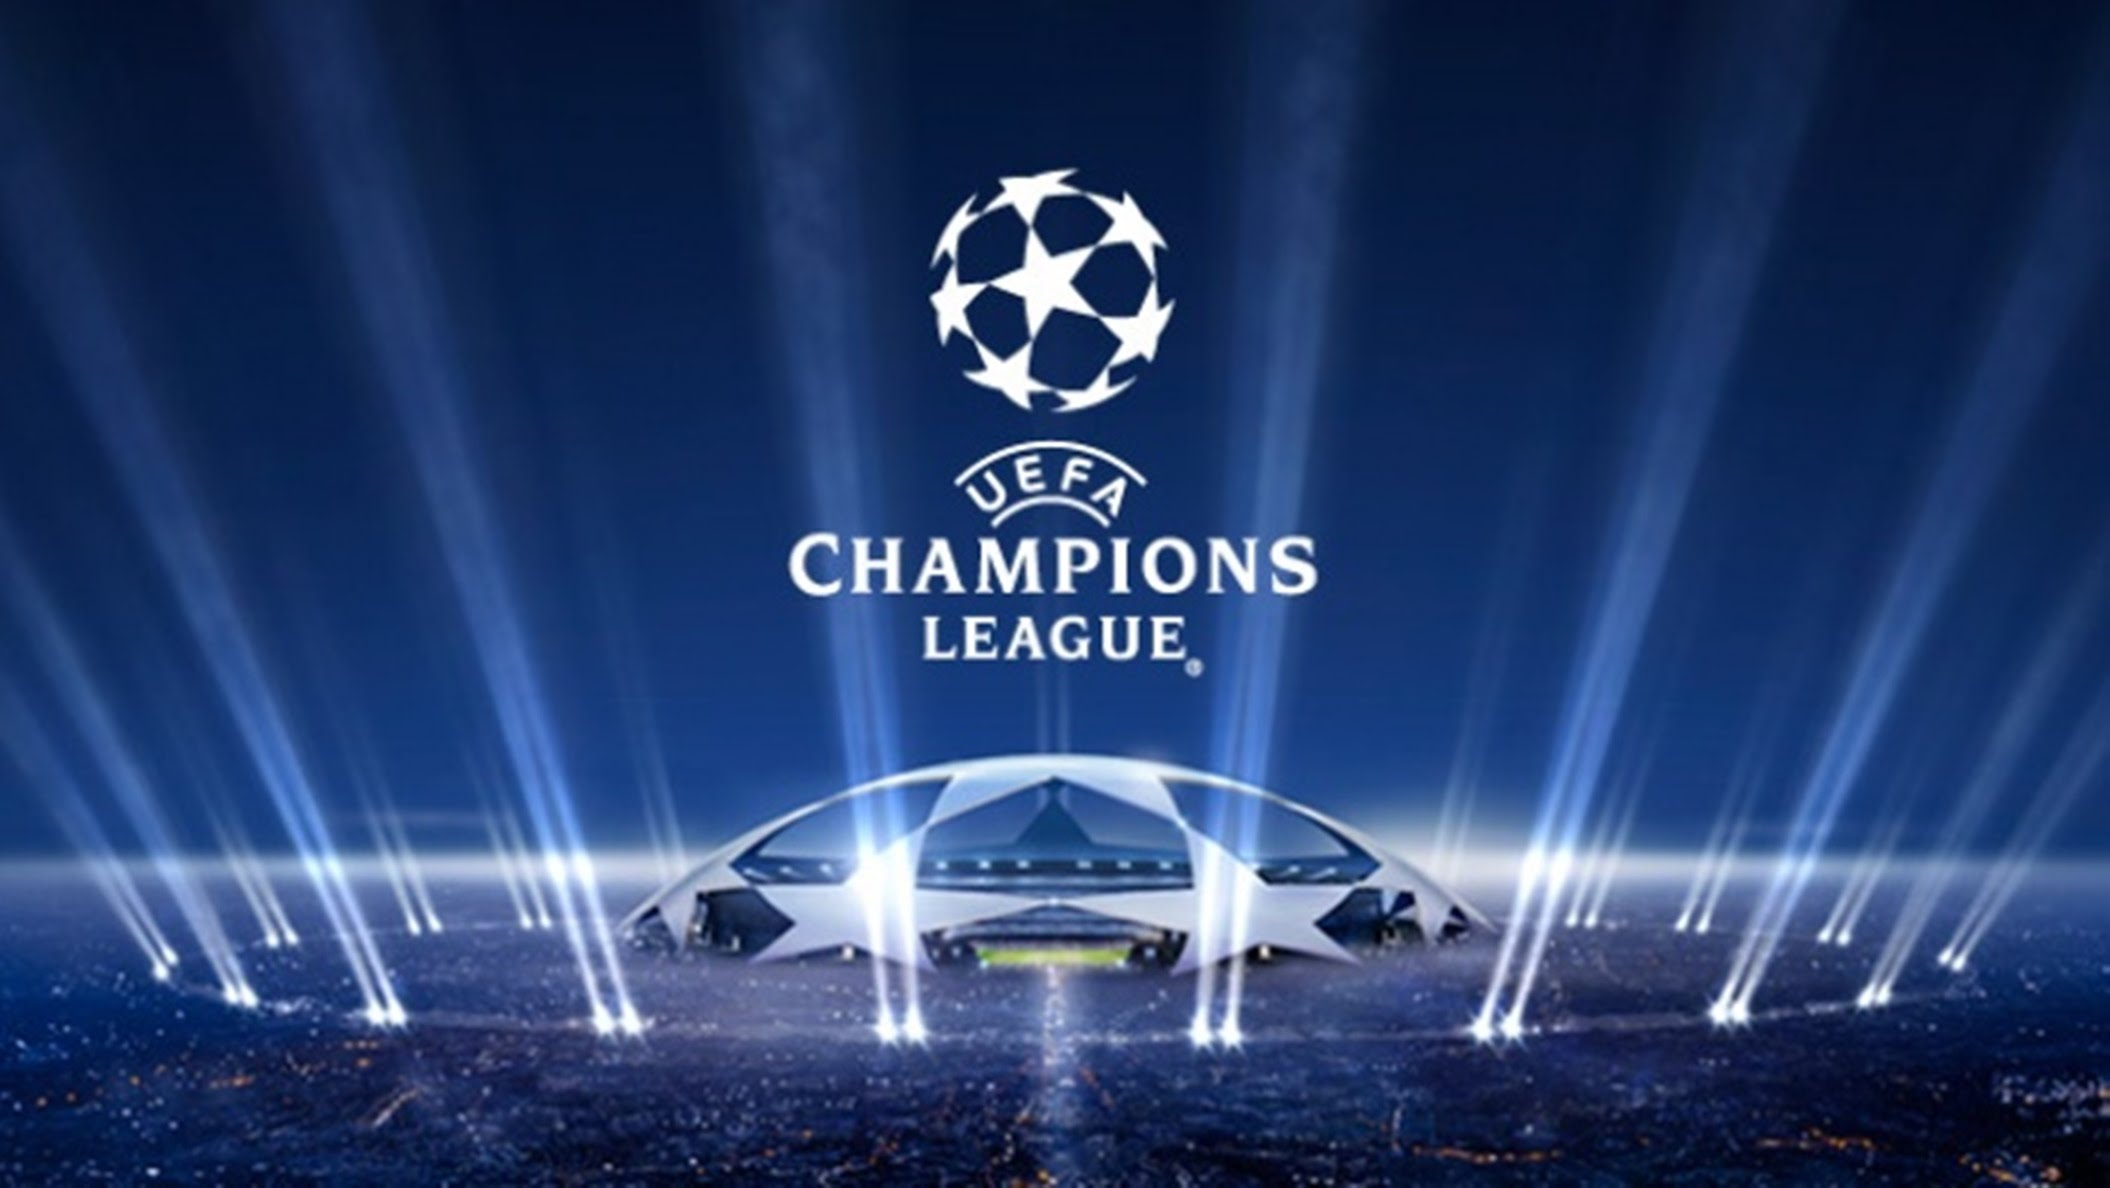 UEFA Champions League is the biggest club football competition in Europe.